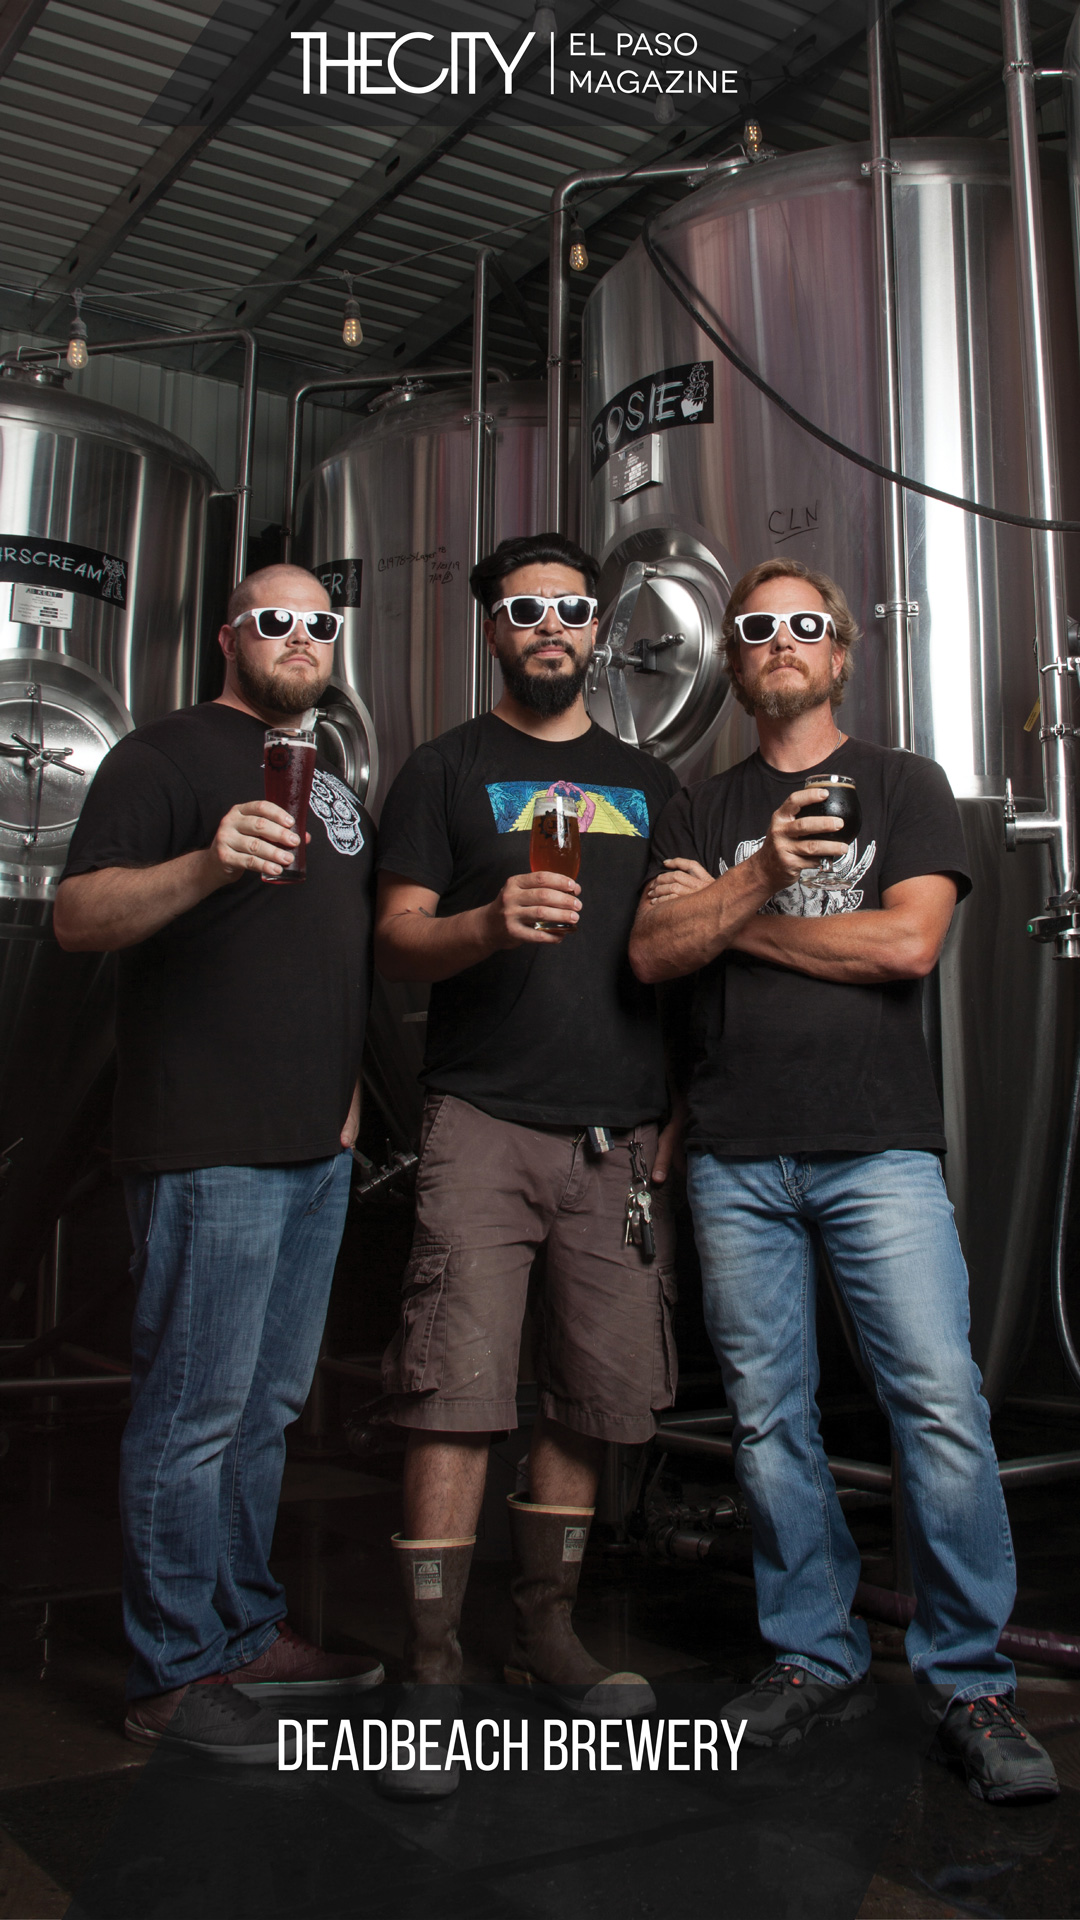 LOCALLY OWNED BUSINESS: DEADBEACH BREWERY